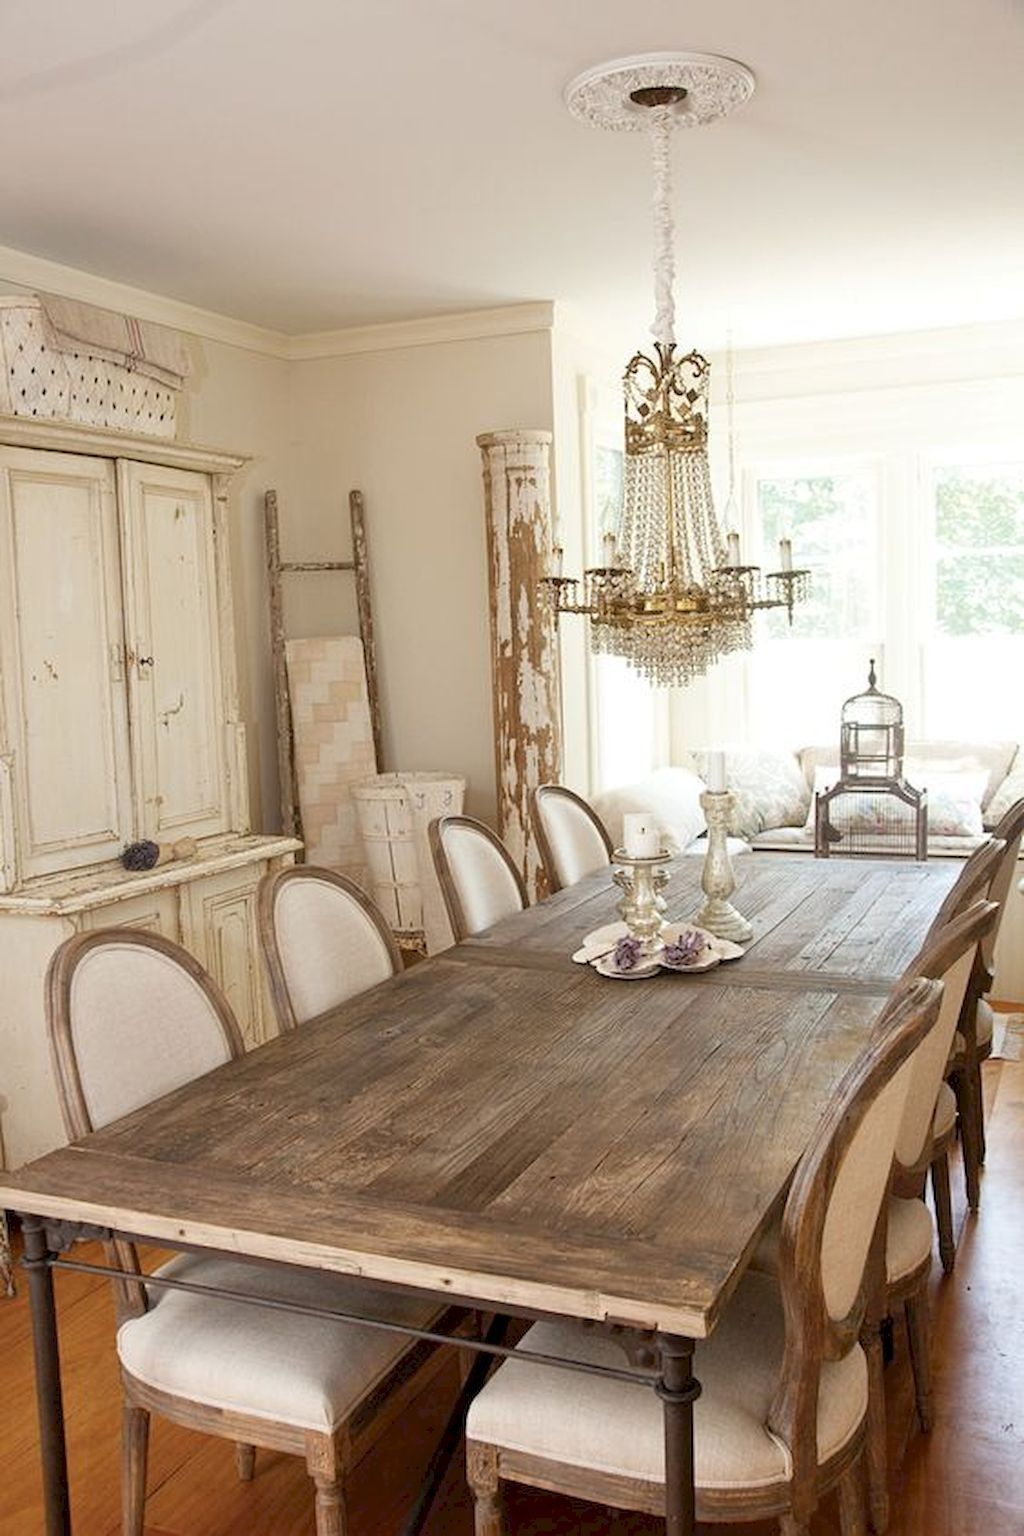 75 Vintage Dining Table Design Ideas Diy 40 Deer Creek Project